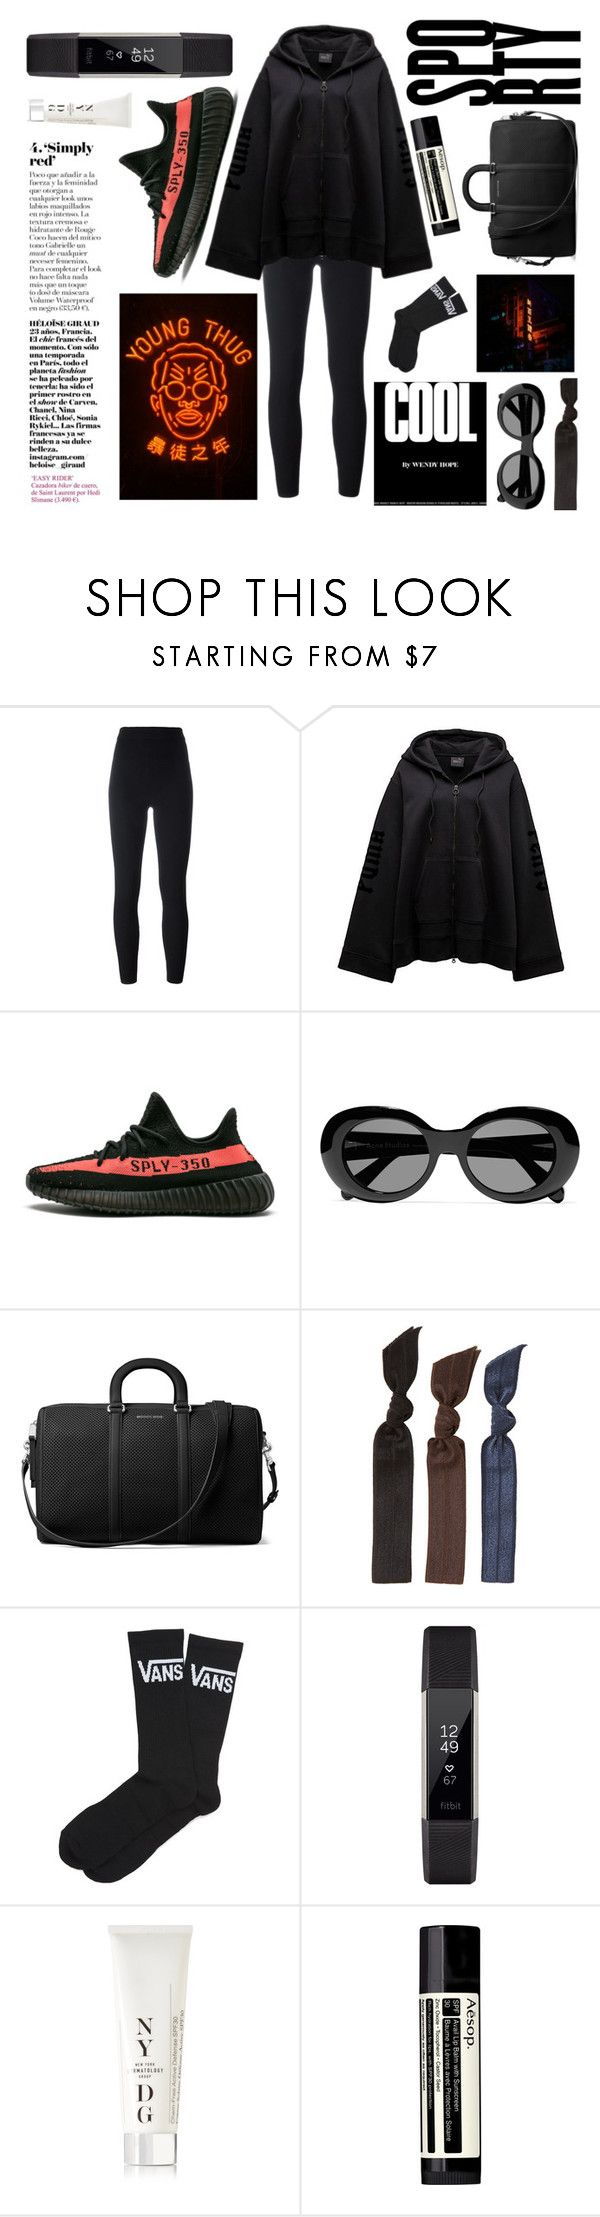 """SPORTY"" by seetheotheroceans ❤ liked on Polyvore featuring Yeezy by Kanye West, Acne Studios, MICHAEL Michael Kors, Emi-Jay, Vans, Fitbit, NYDG and Aesop"